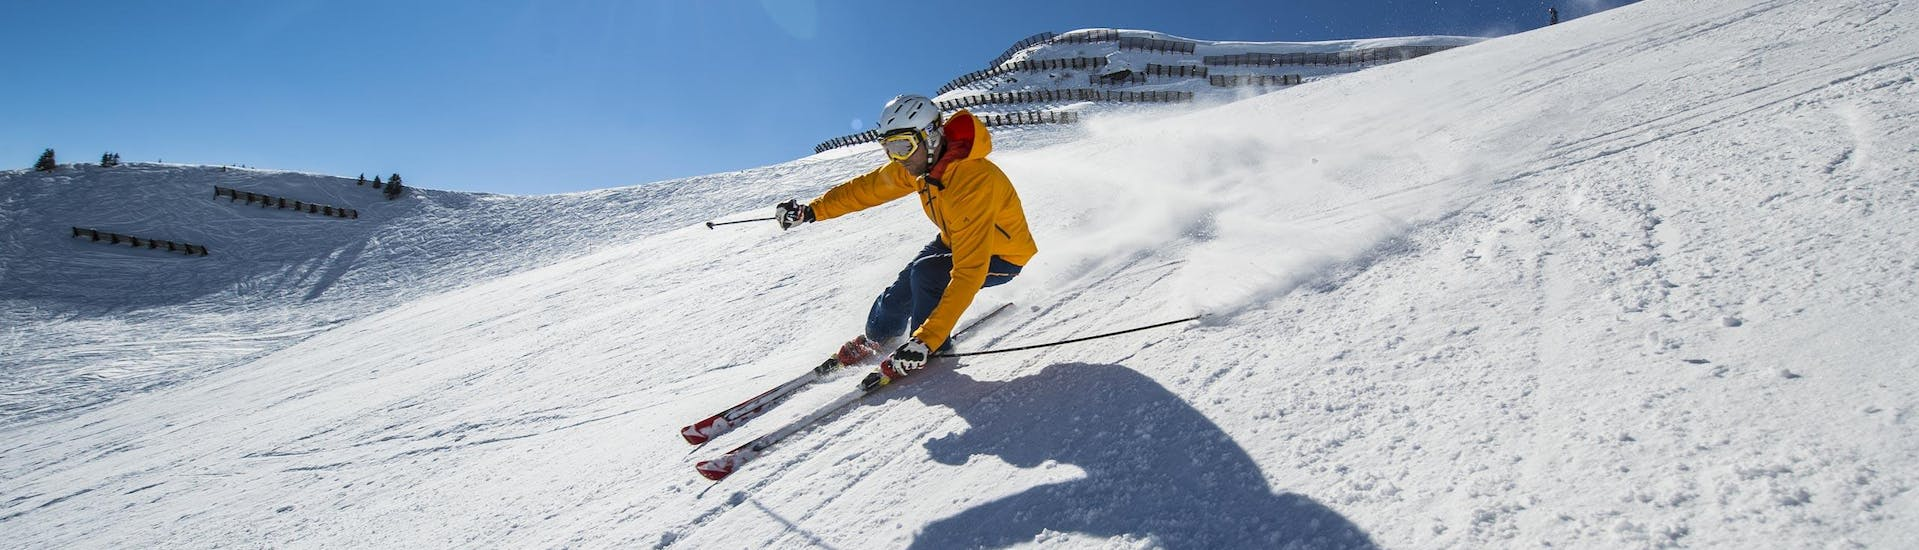 Private Ski Lessons for Adults of All Levels: A skier is skiing down a sunny ski slope while participating in an activity offered by Engadin Snowsports.